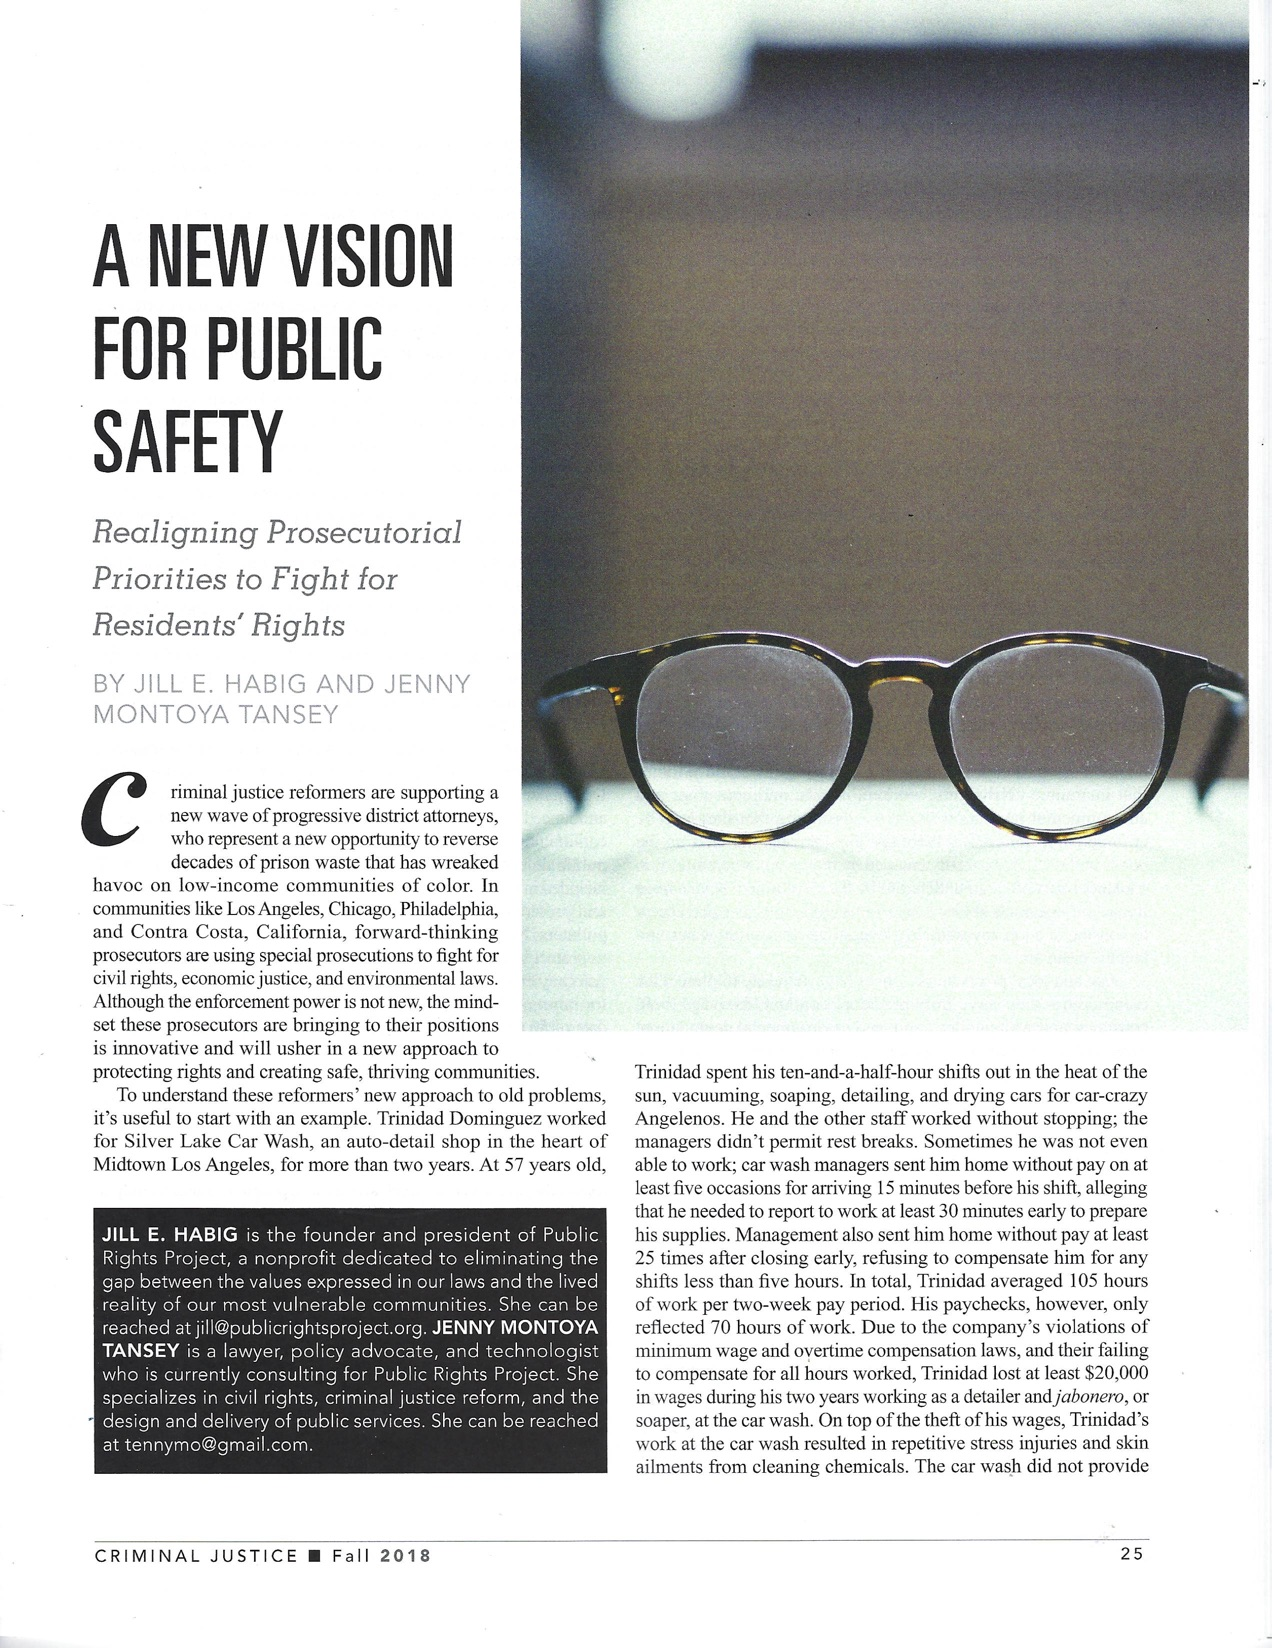 A New Vision for Public Safety - Click here for PDF.